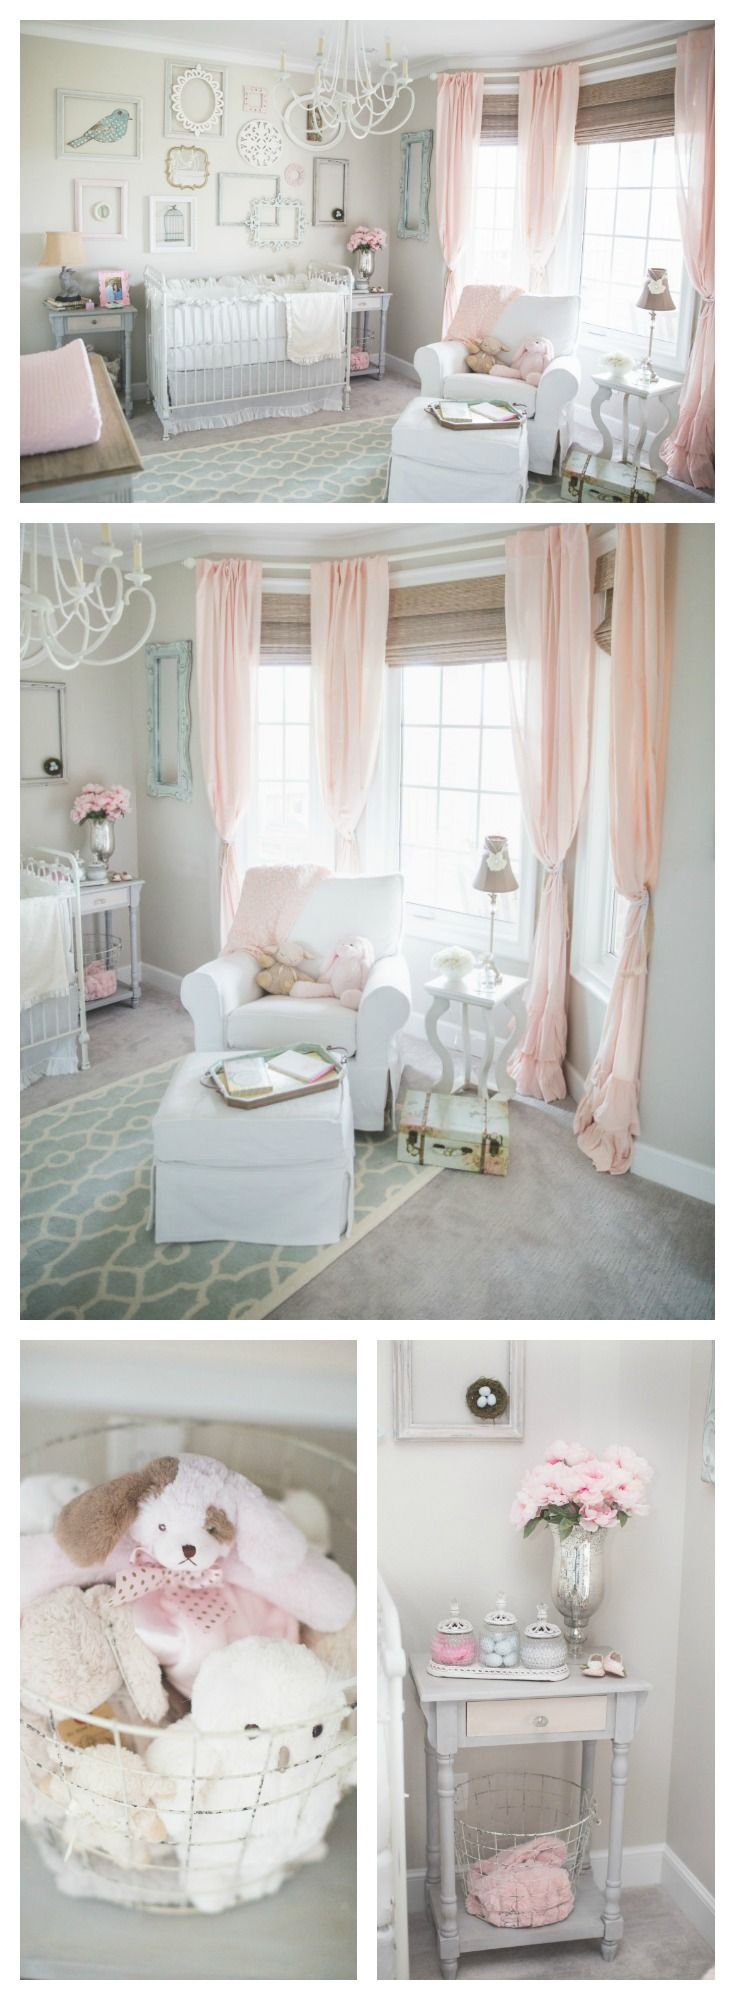 Best 25+ Baby girl rooms ideas on Pinterest | Baby room ideas for ...